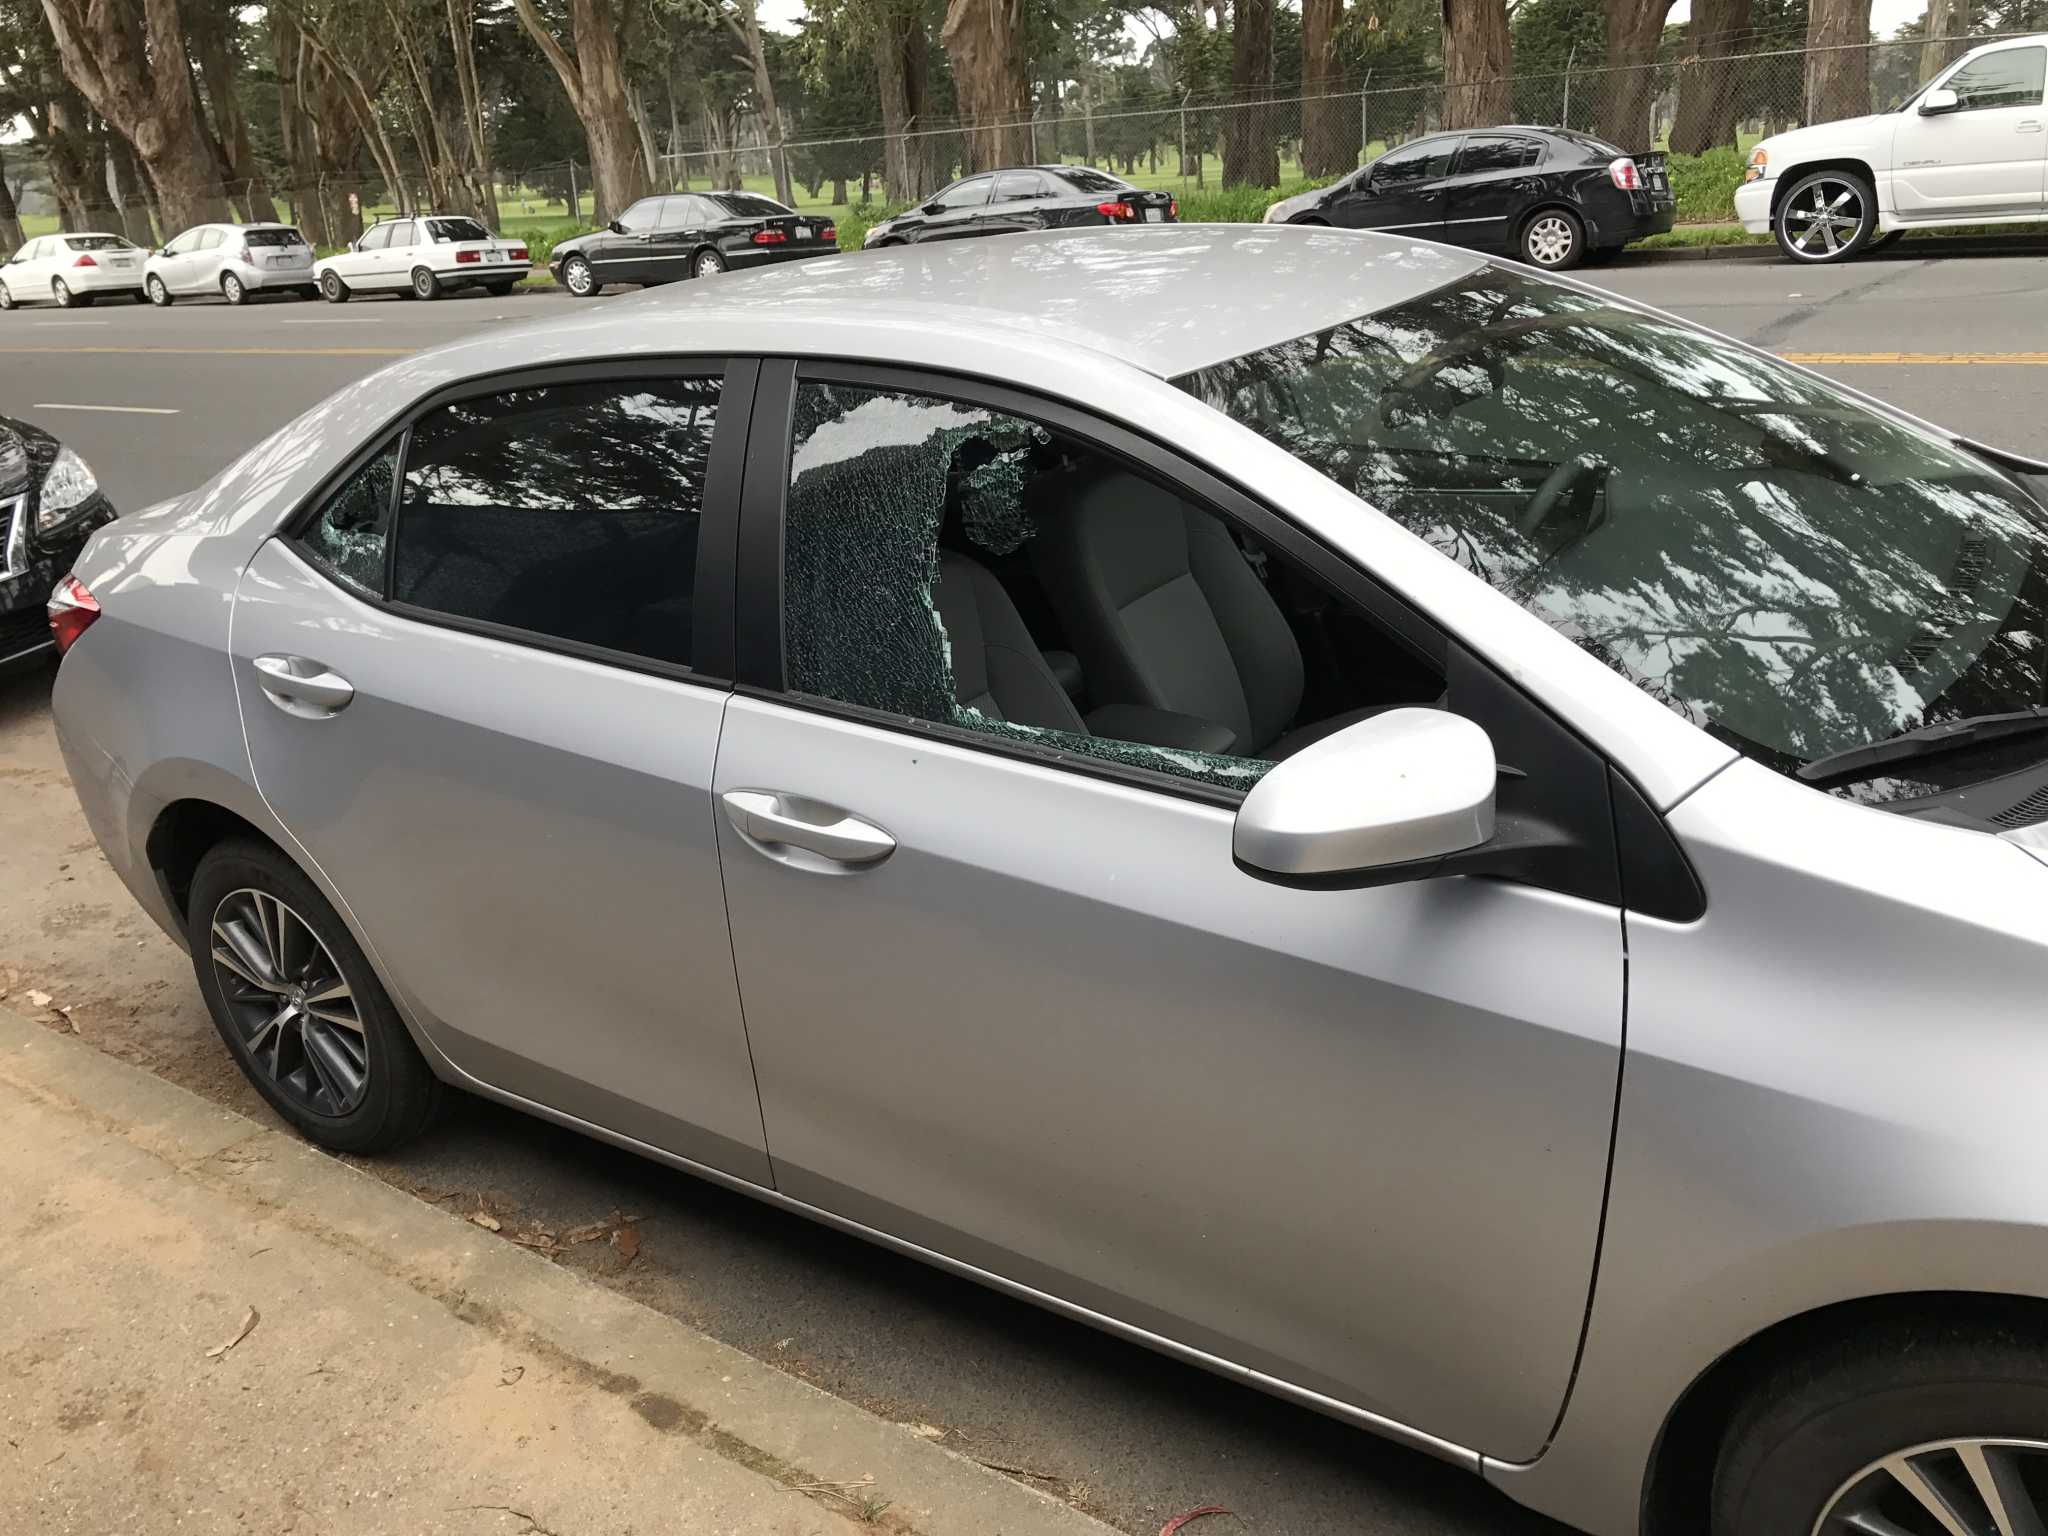 A student found their car windows smashed and the glove compartment open on Lake Merced Boulevard on Friday, March 10, 2017 near SF State (Ivan Corona/ Xpress).